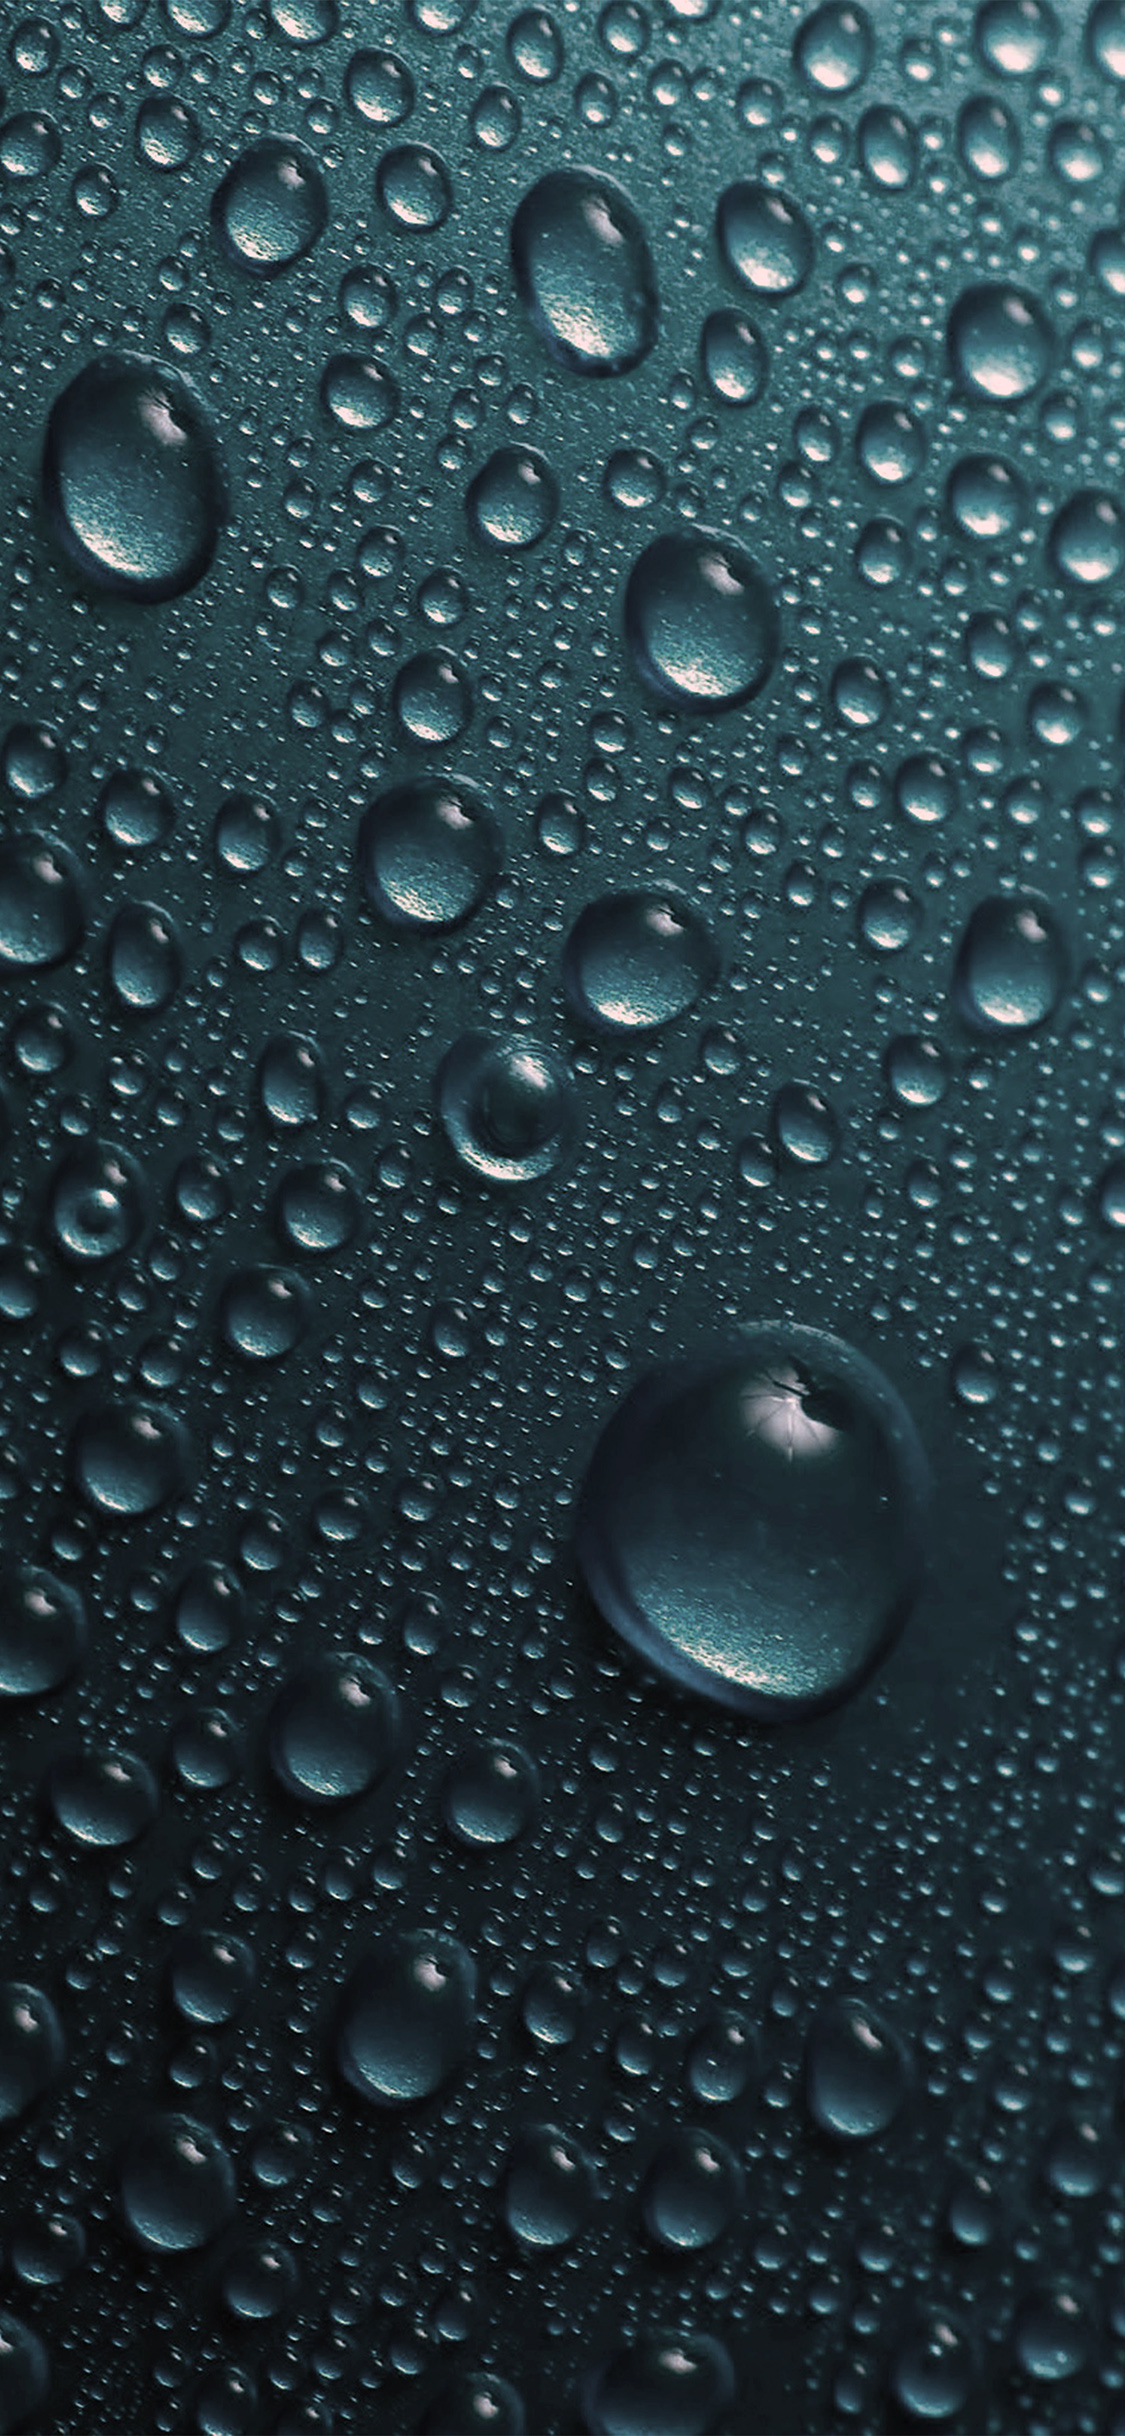 iPhonexpapers.com-Apple-iPhone-wallpaper-vr32-rain-drop-blue-water-sad-pattern-dark